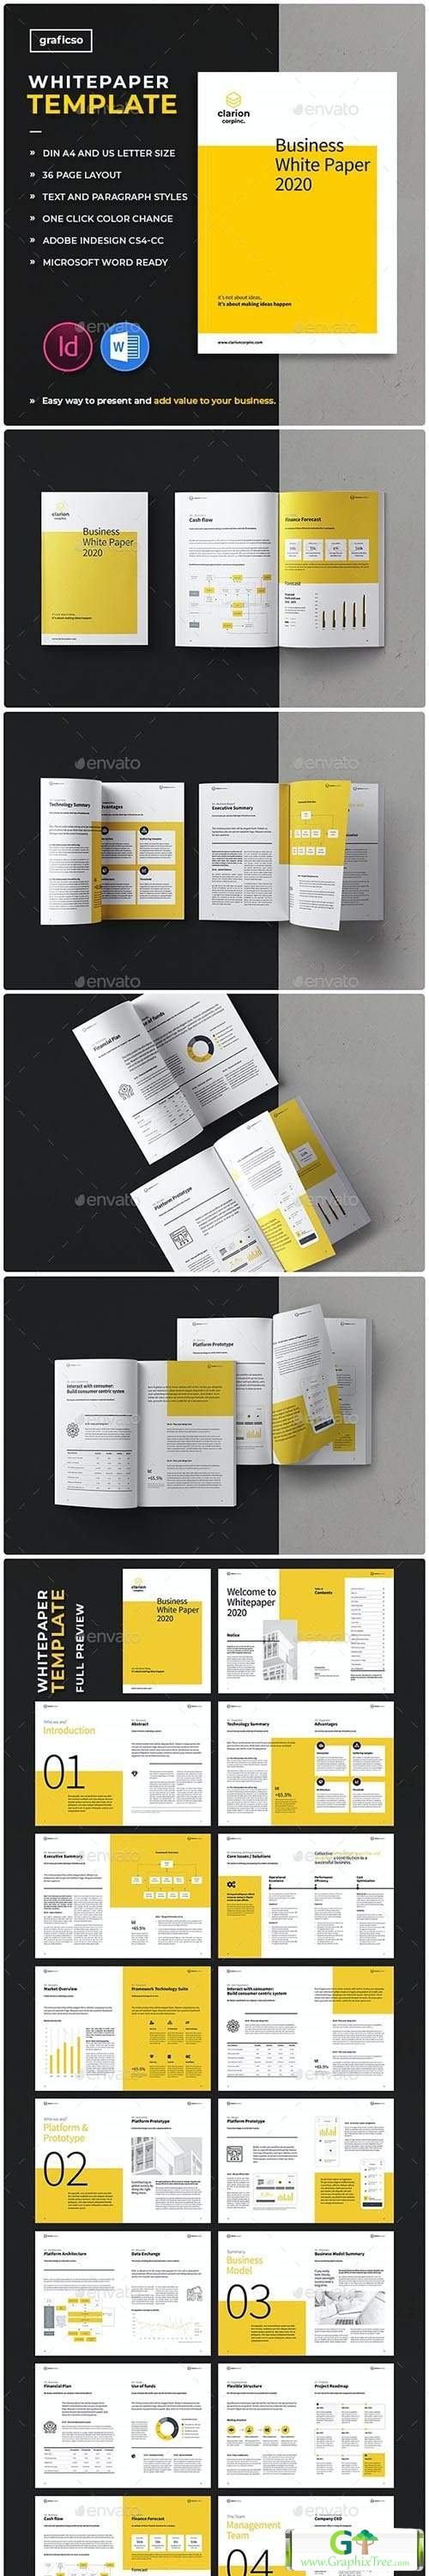 White Paper 28455731 [Powerpoint] [Indesign & Powerpoint]